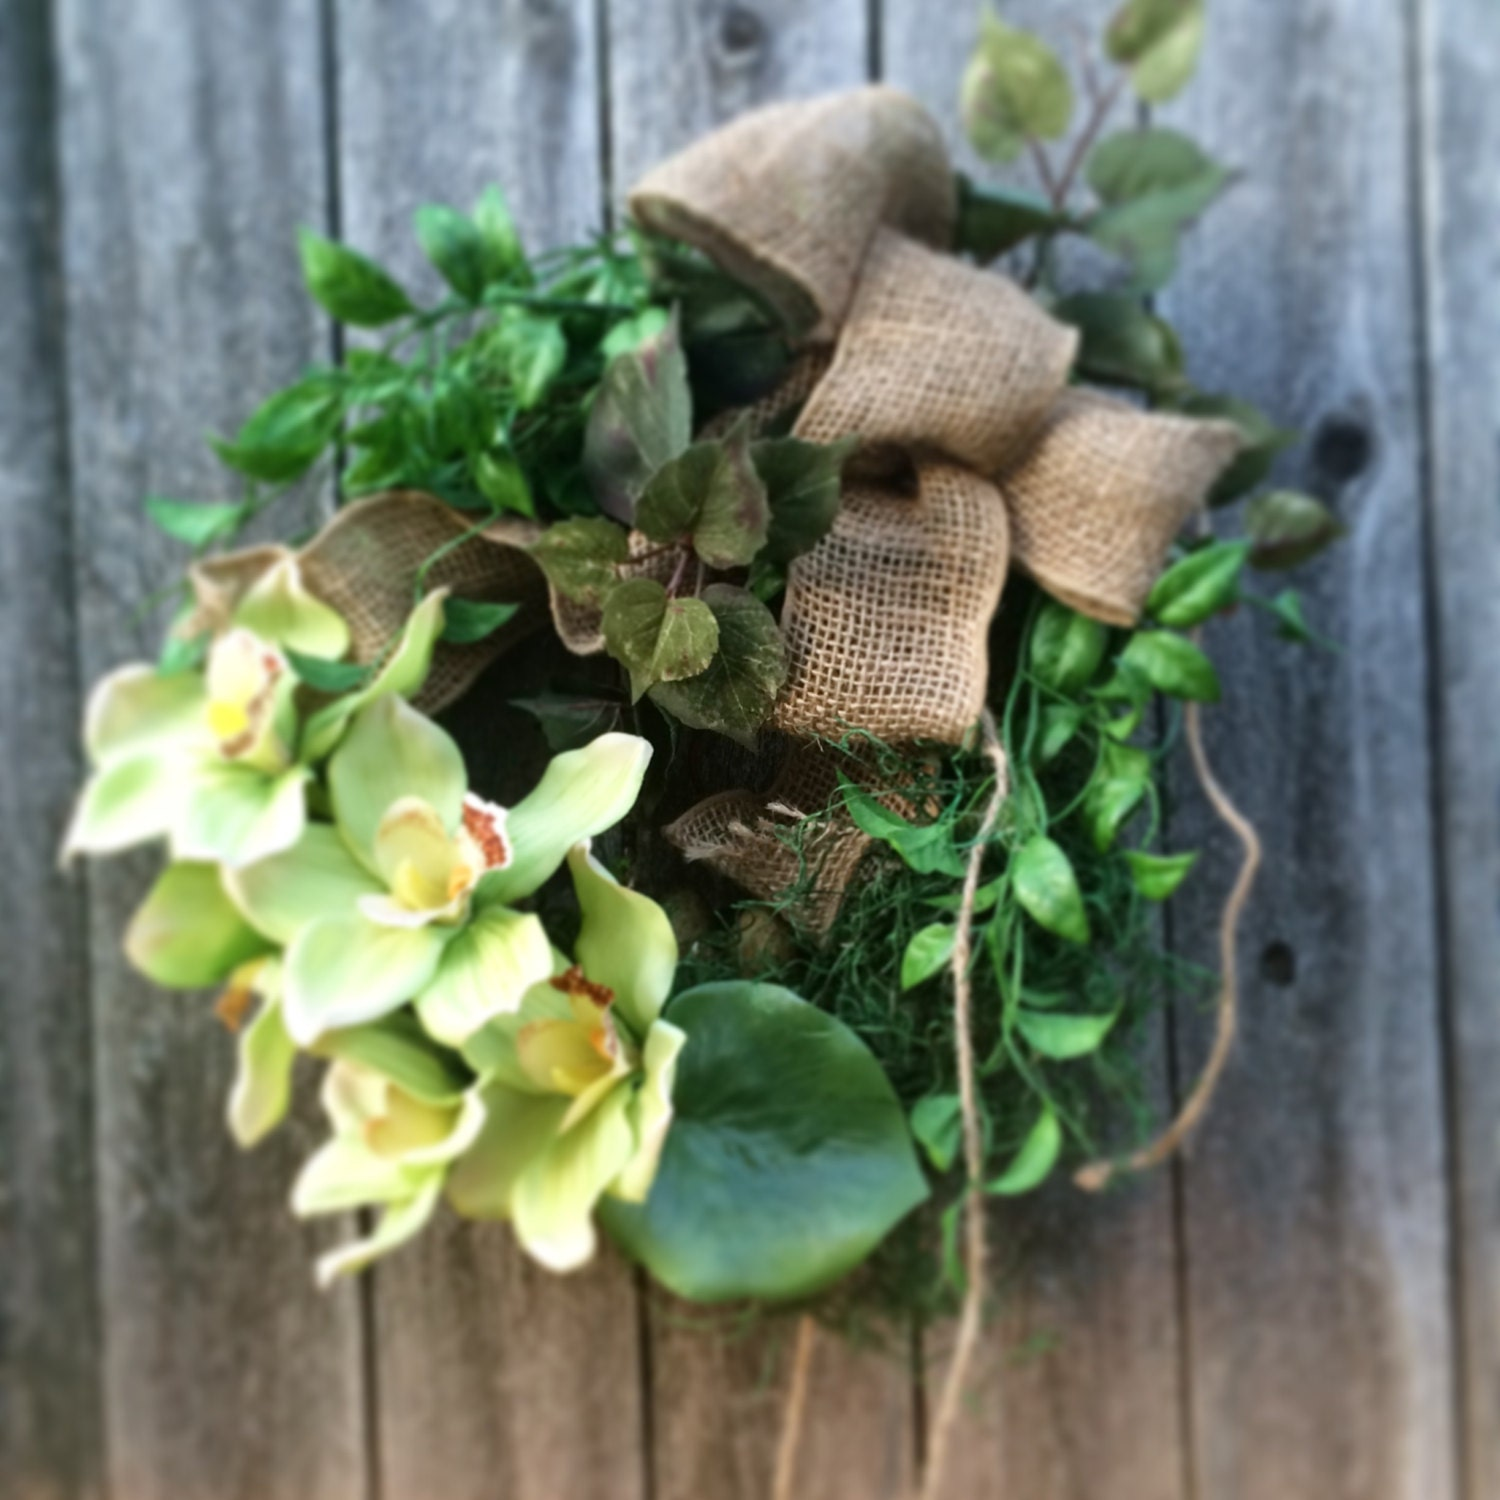 Indoor Wreaths Home Decorating: Orchids Wreaths. Unique Moss Wreath Indoor Decor Home Decor